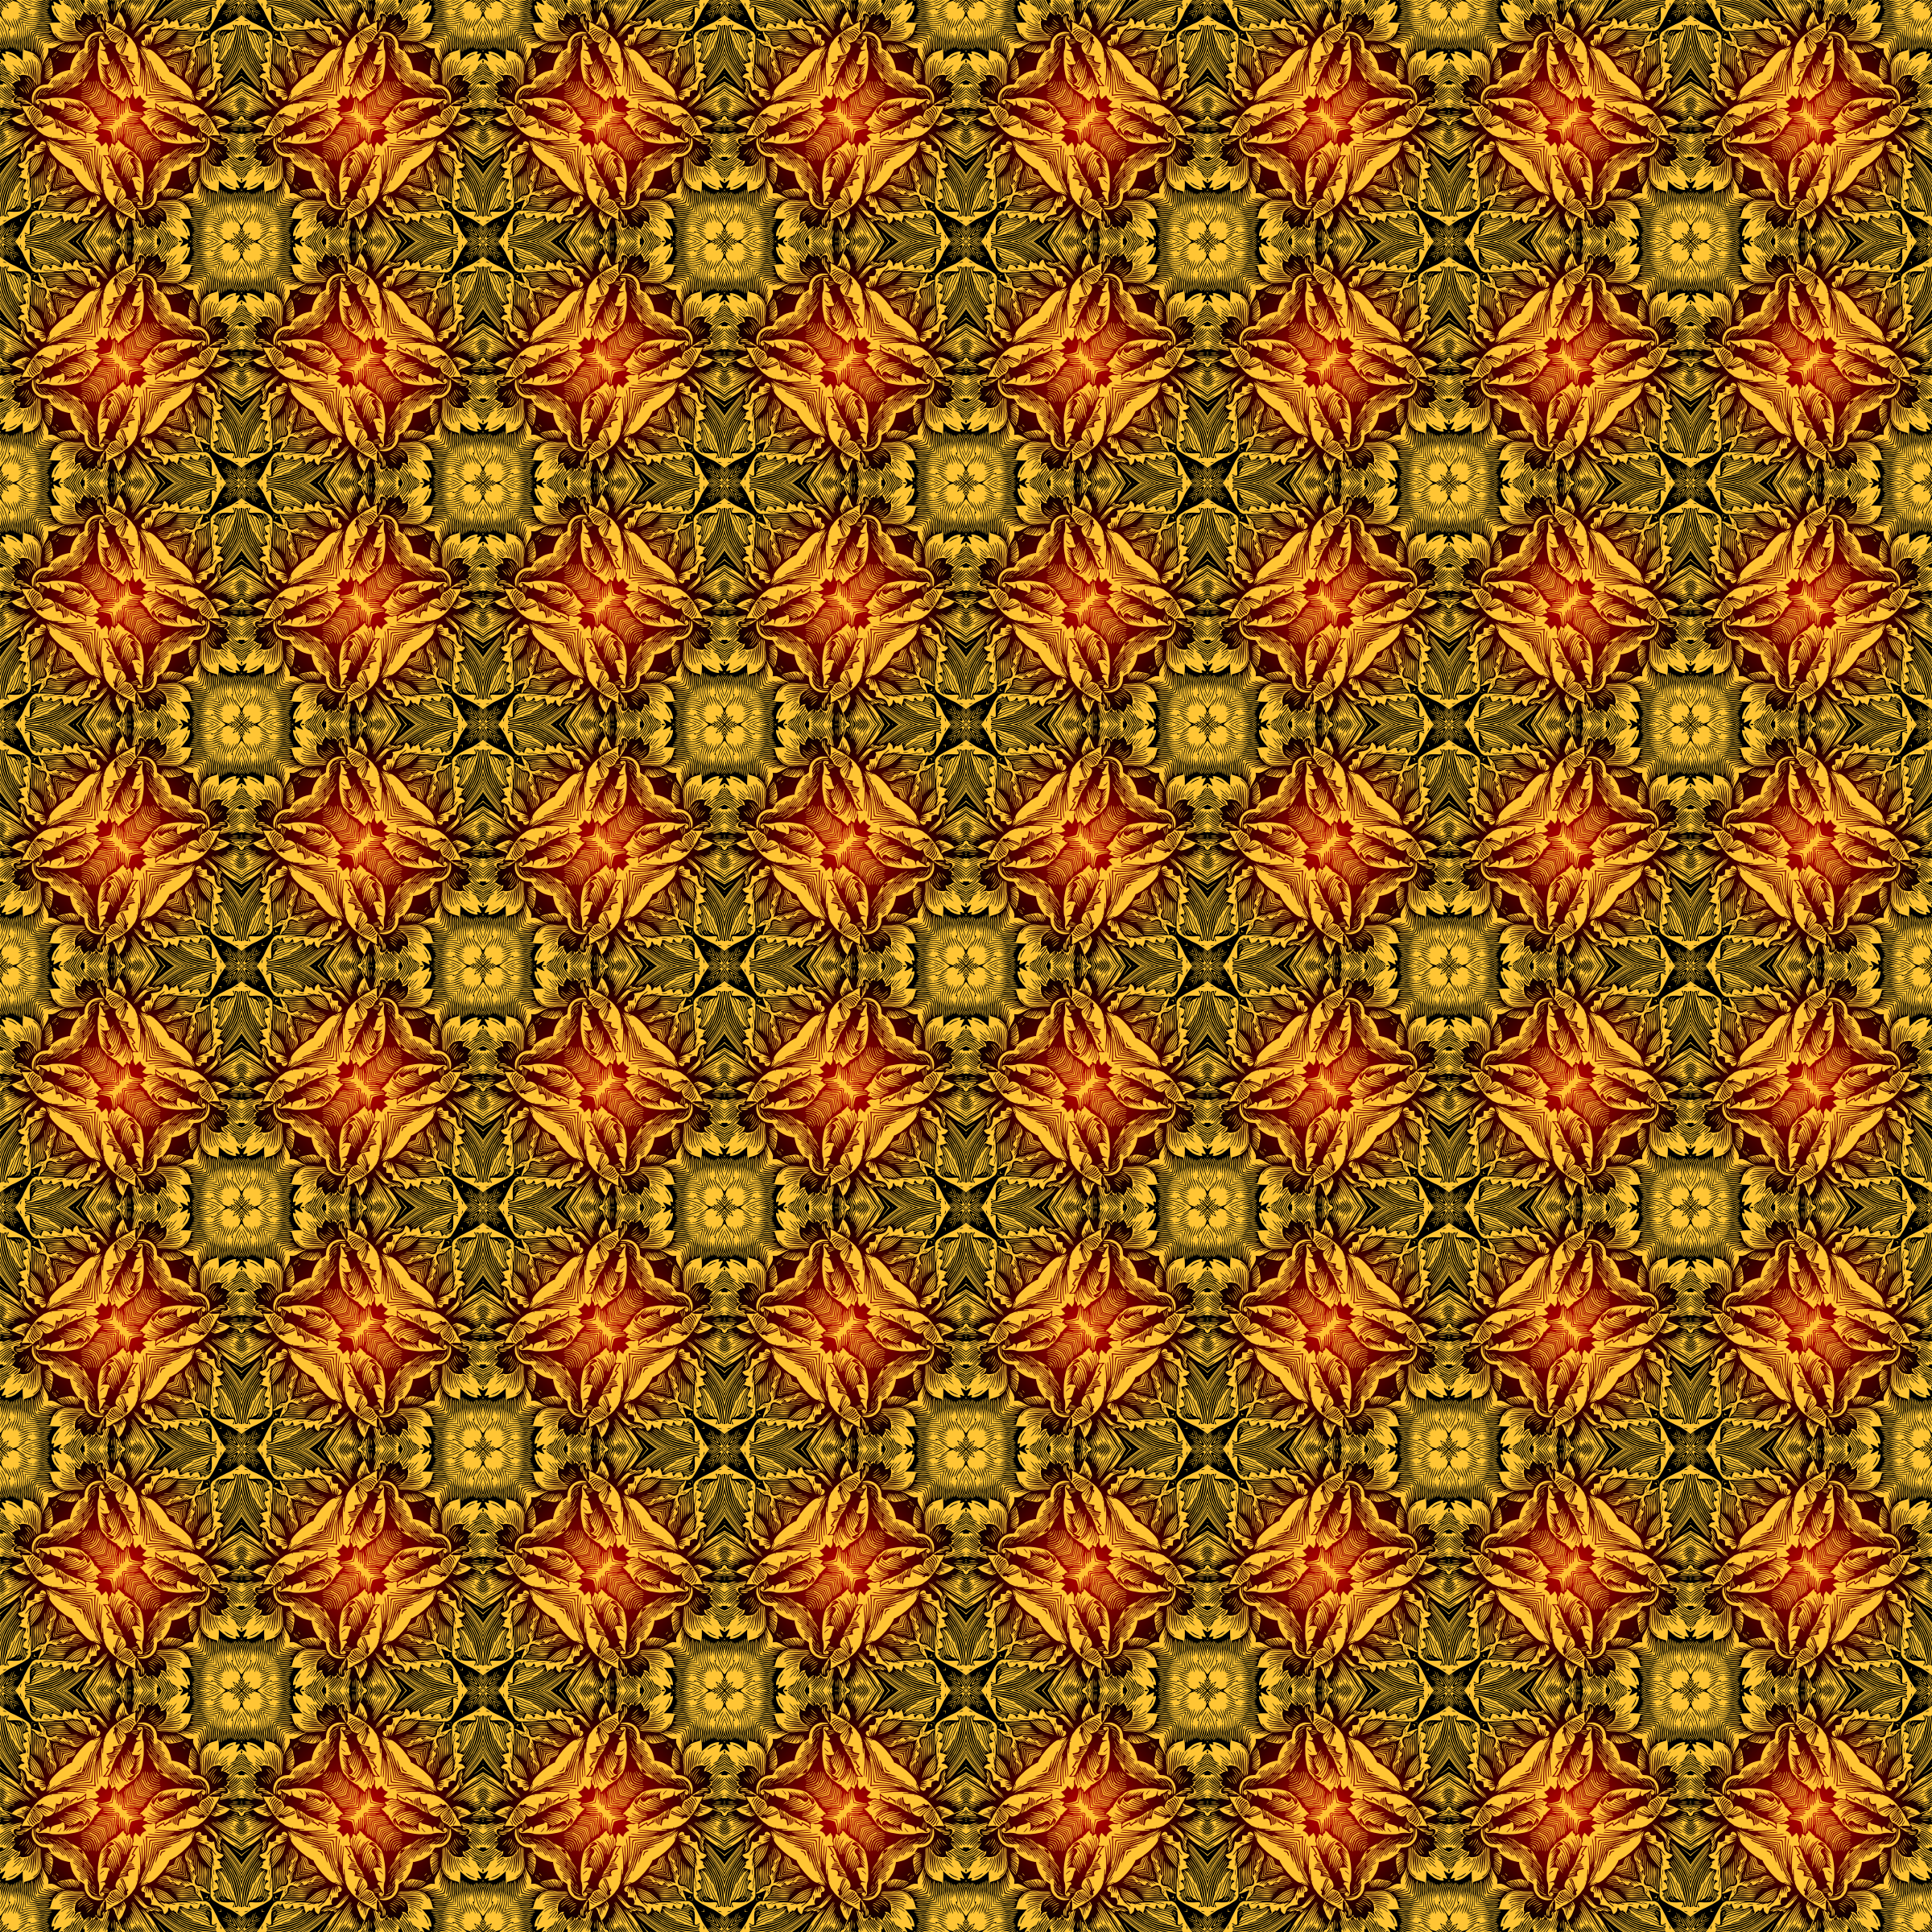 Background pattern 176 (colour variant 2) by Firkin